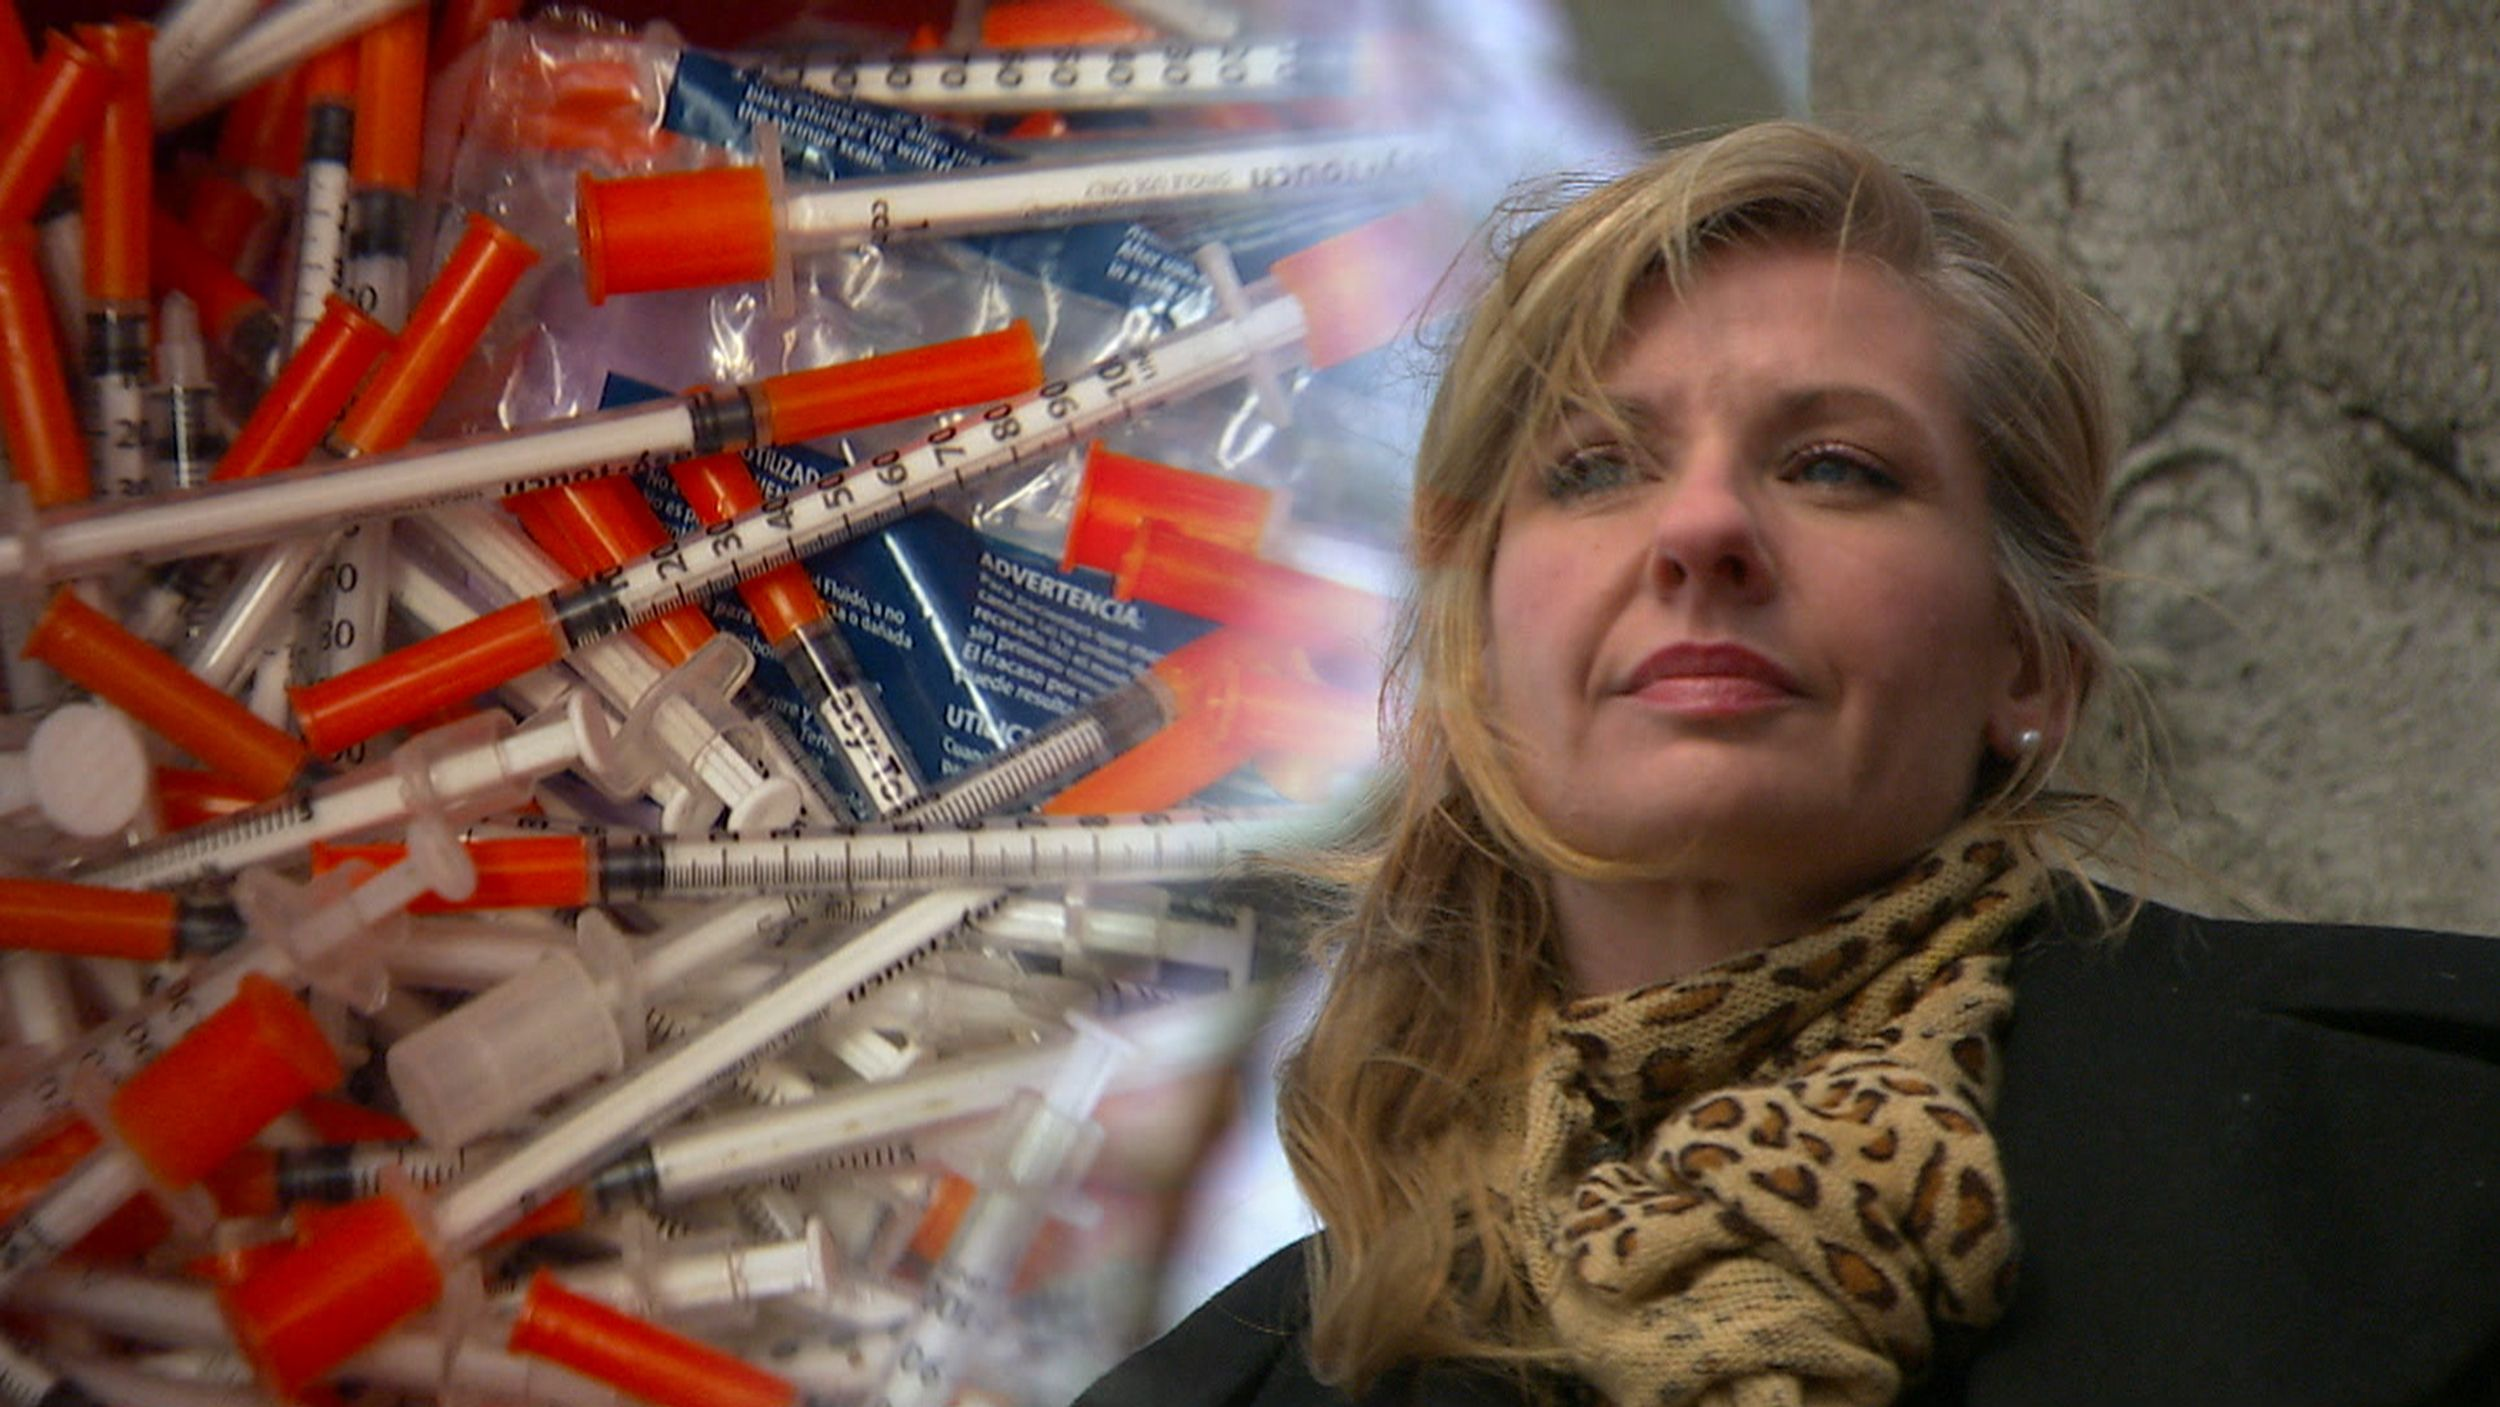 Hooked: A teacher's addiction and the new face of heroin